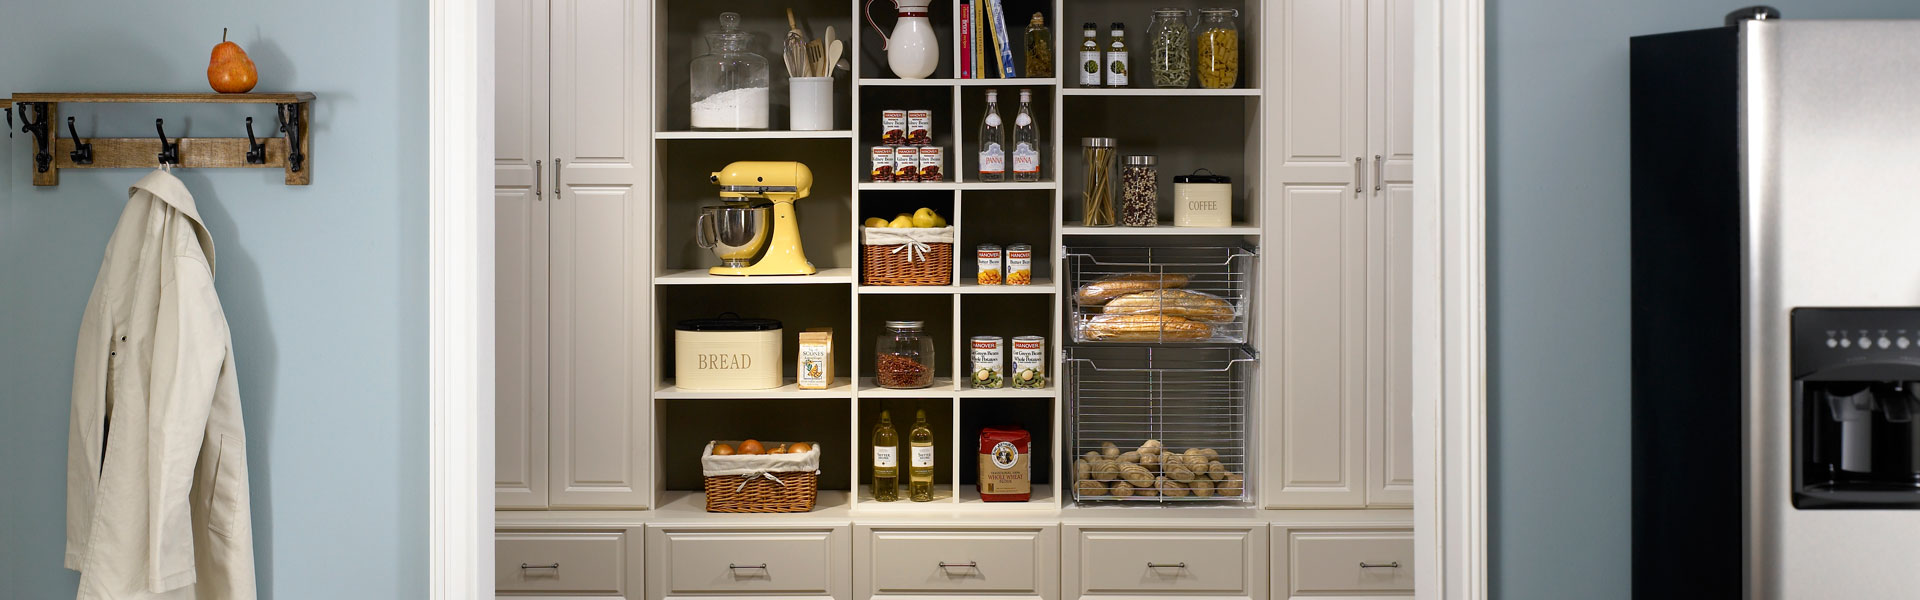 Functional walk-in pantry design in Ivory for Plymouth home